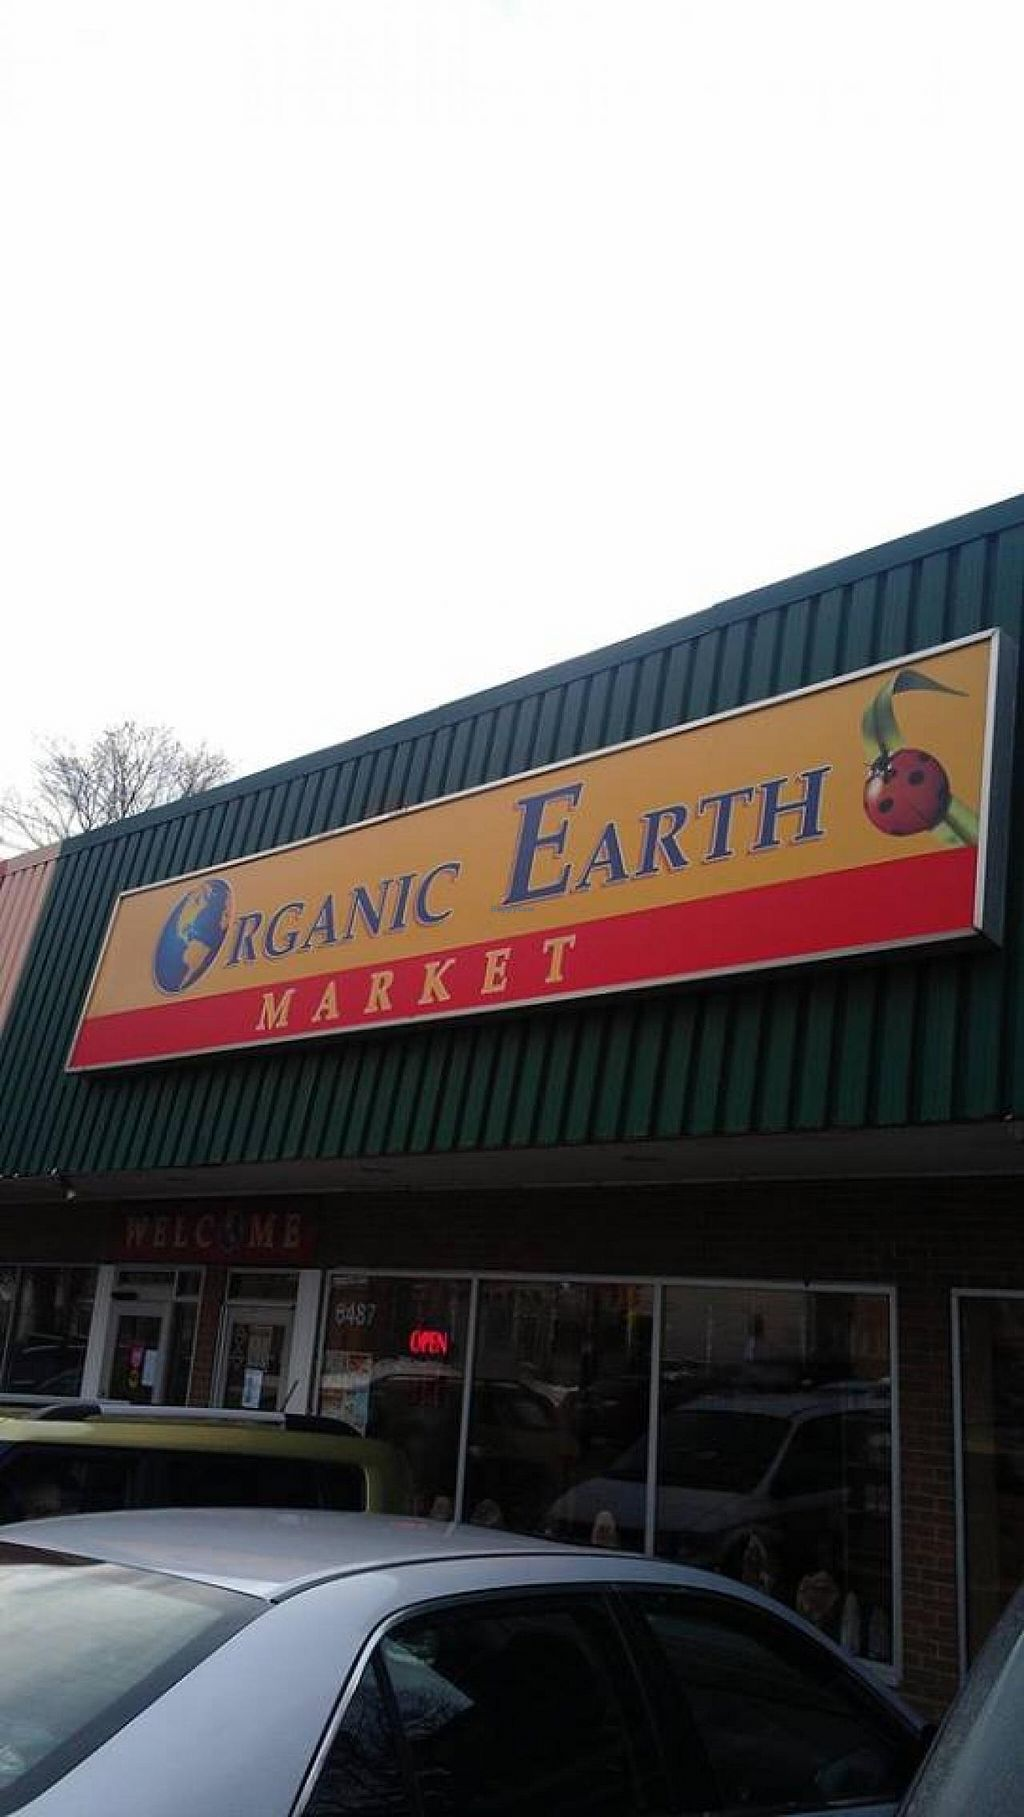 "Photo of Organic Earth Market  by <a href=""/members/profile/QuothTheRaven"">QuothTheRaven</a> <br/>New store <br/> January 26, 2014  - <a href='/contact/abuse/image/1296/63165'>Report</a>"